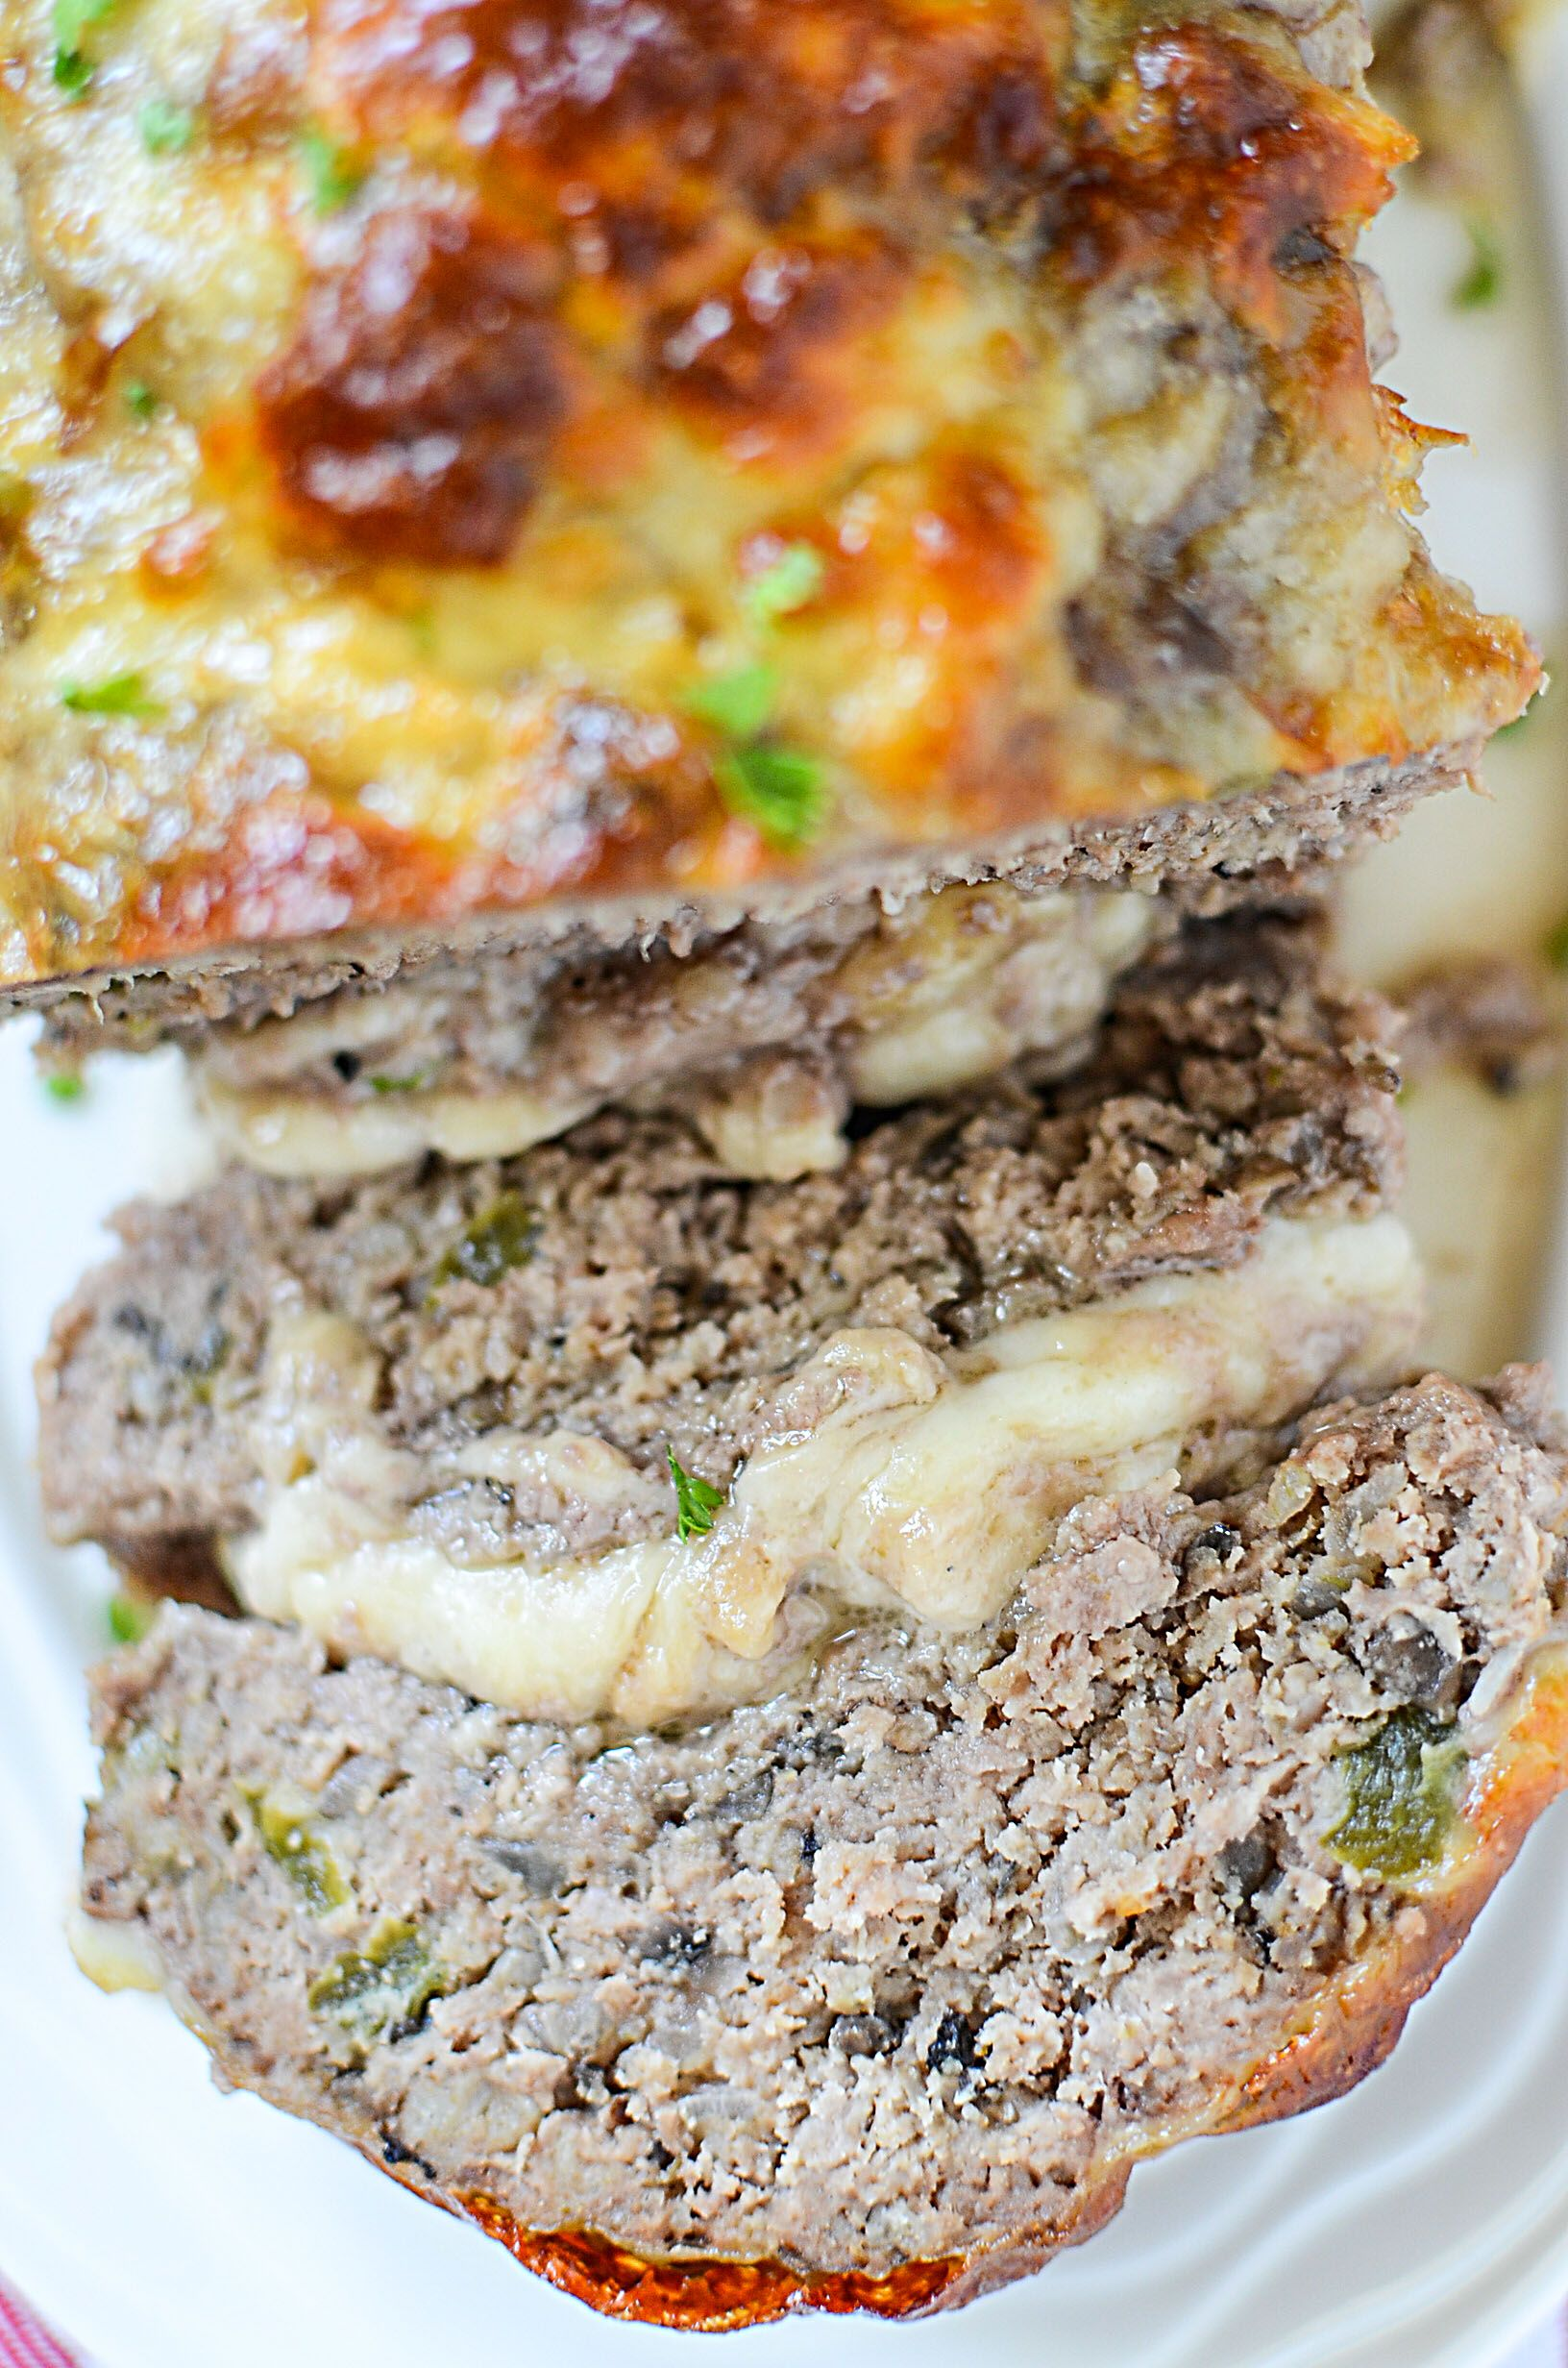 This Meatloaf Recipe Is My Family S Favorite Sunday Night Dinner It Really Is The Best Ever Meatloaf And It Is Inc Recipes Food The Best Ever Meatloaf Recipe